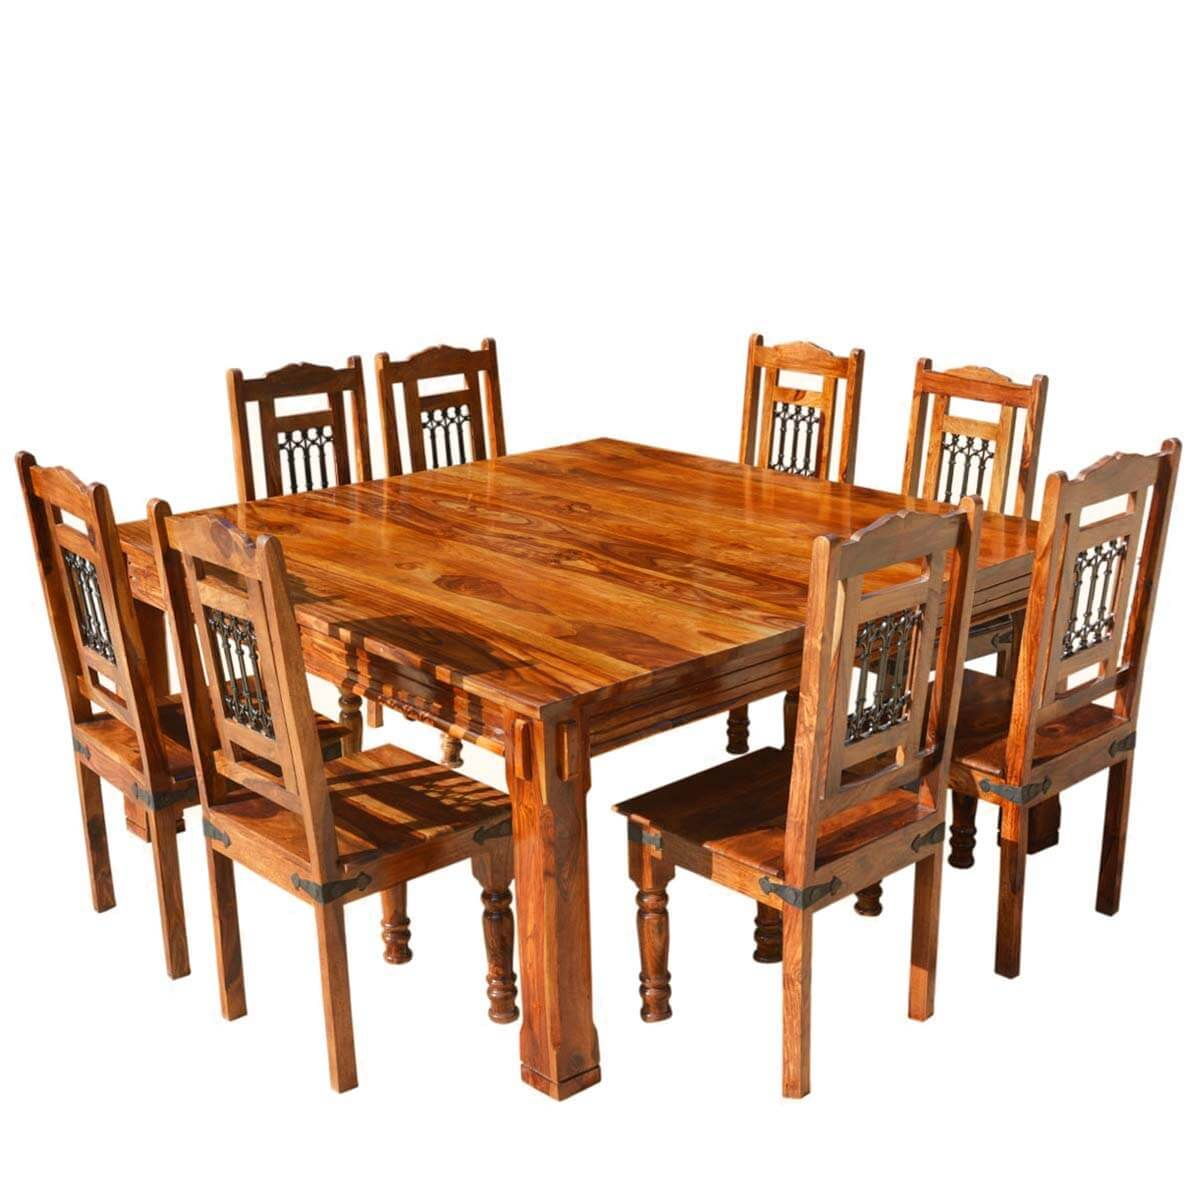 Solid wood rustic square dining table chairs set for Solid wood dining room table and chairs